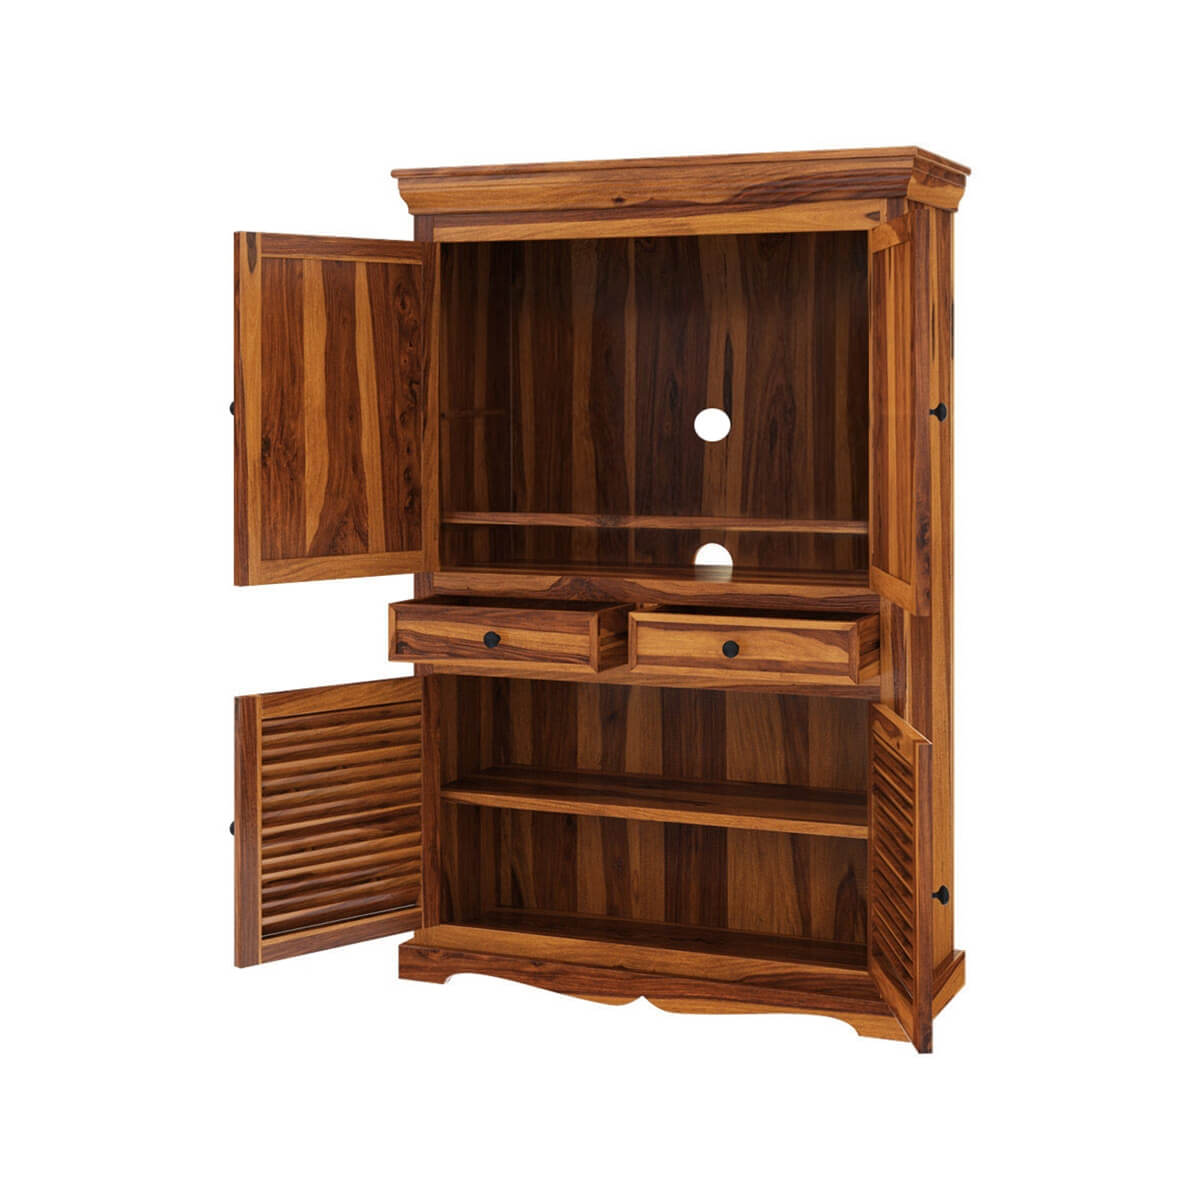 Tanay Louvered Doors Rustic Large Solid Wood TV Armoire ...